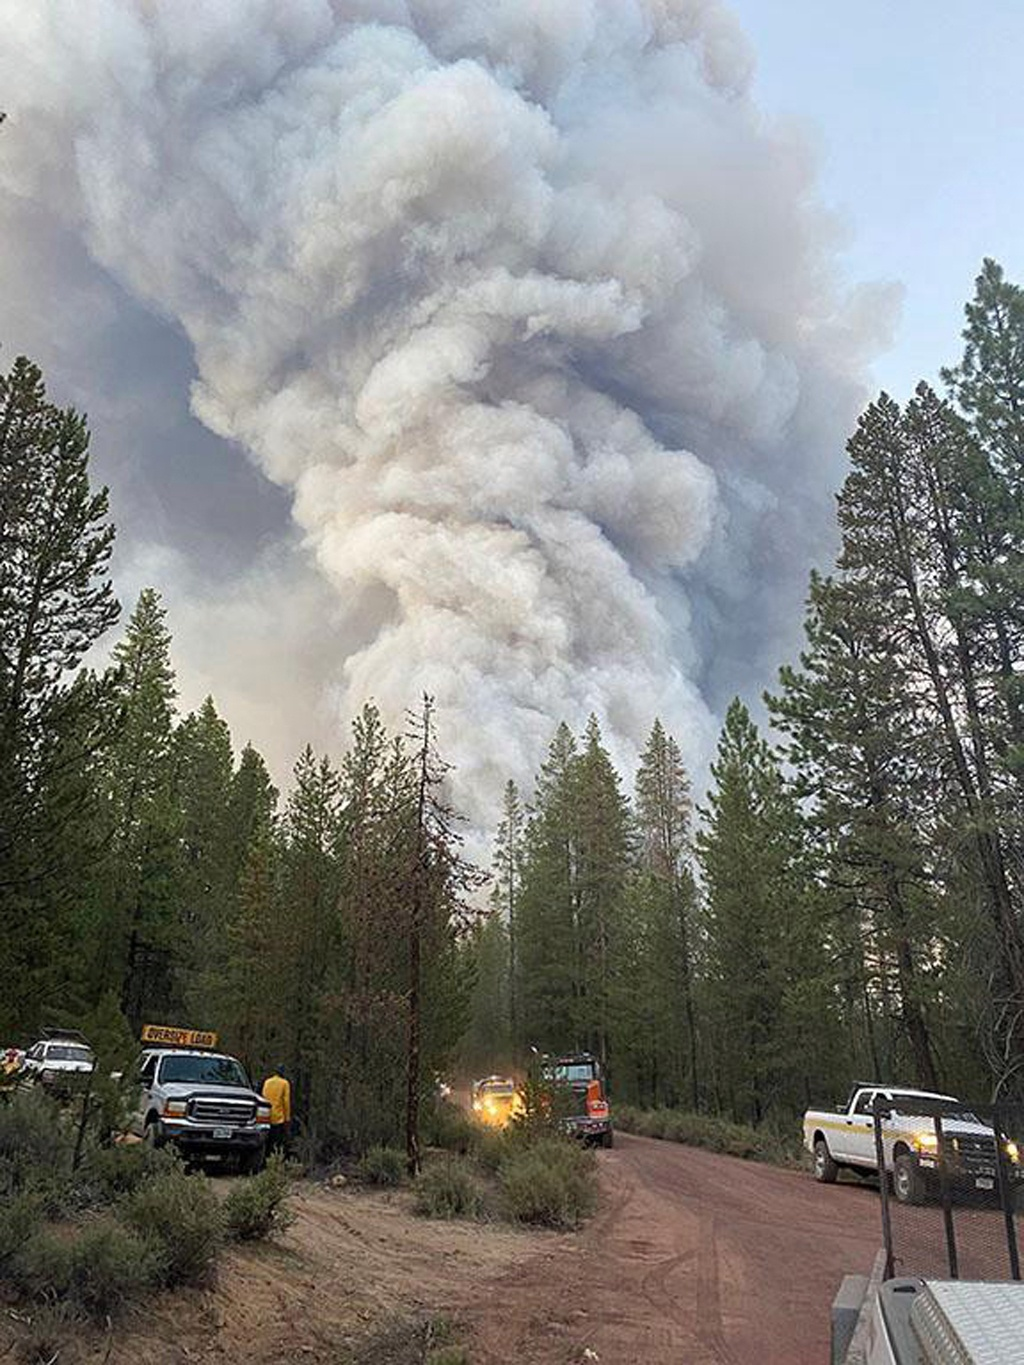 A photo provided by the US Forest Service shows a column of smoke rising from the Bootleg Fire near Bly, Oregon, on July 7, 2021. (US Forest Service via The New York Times)